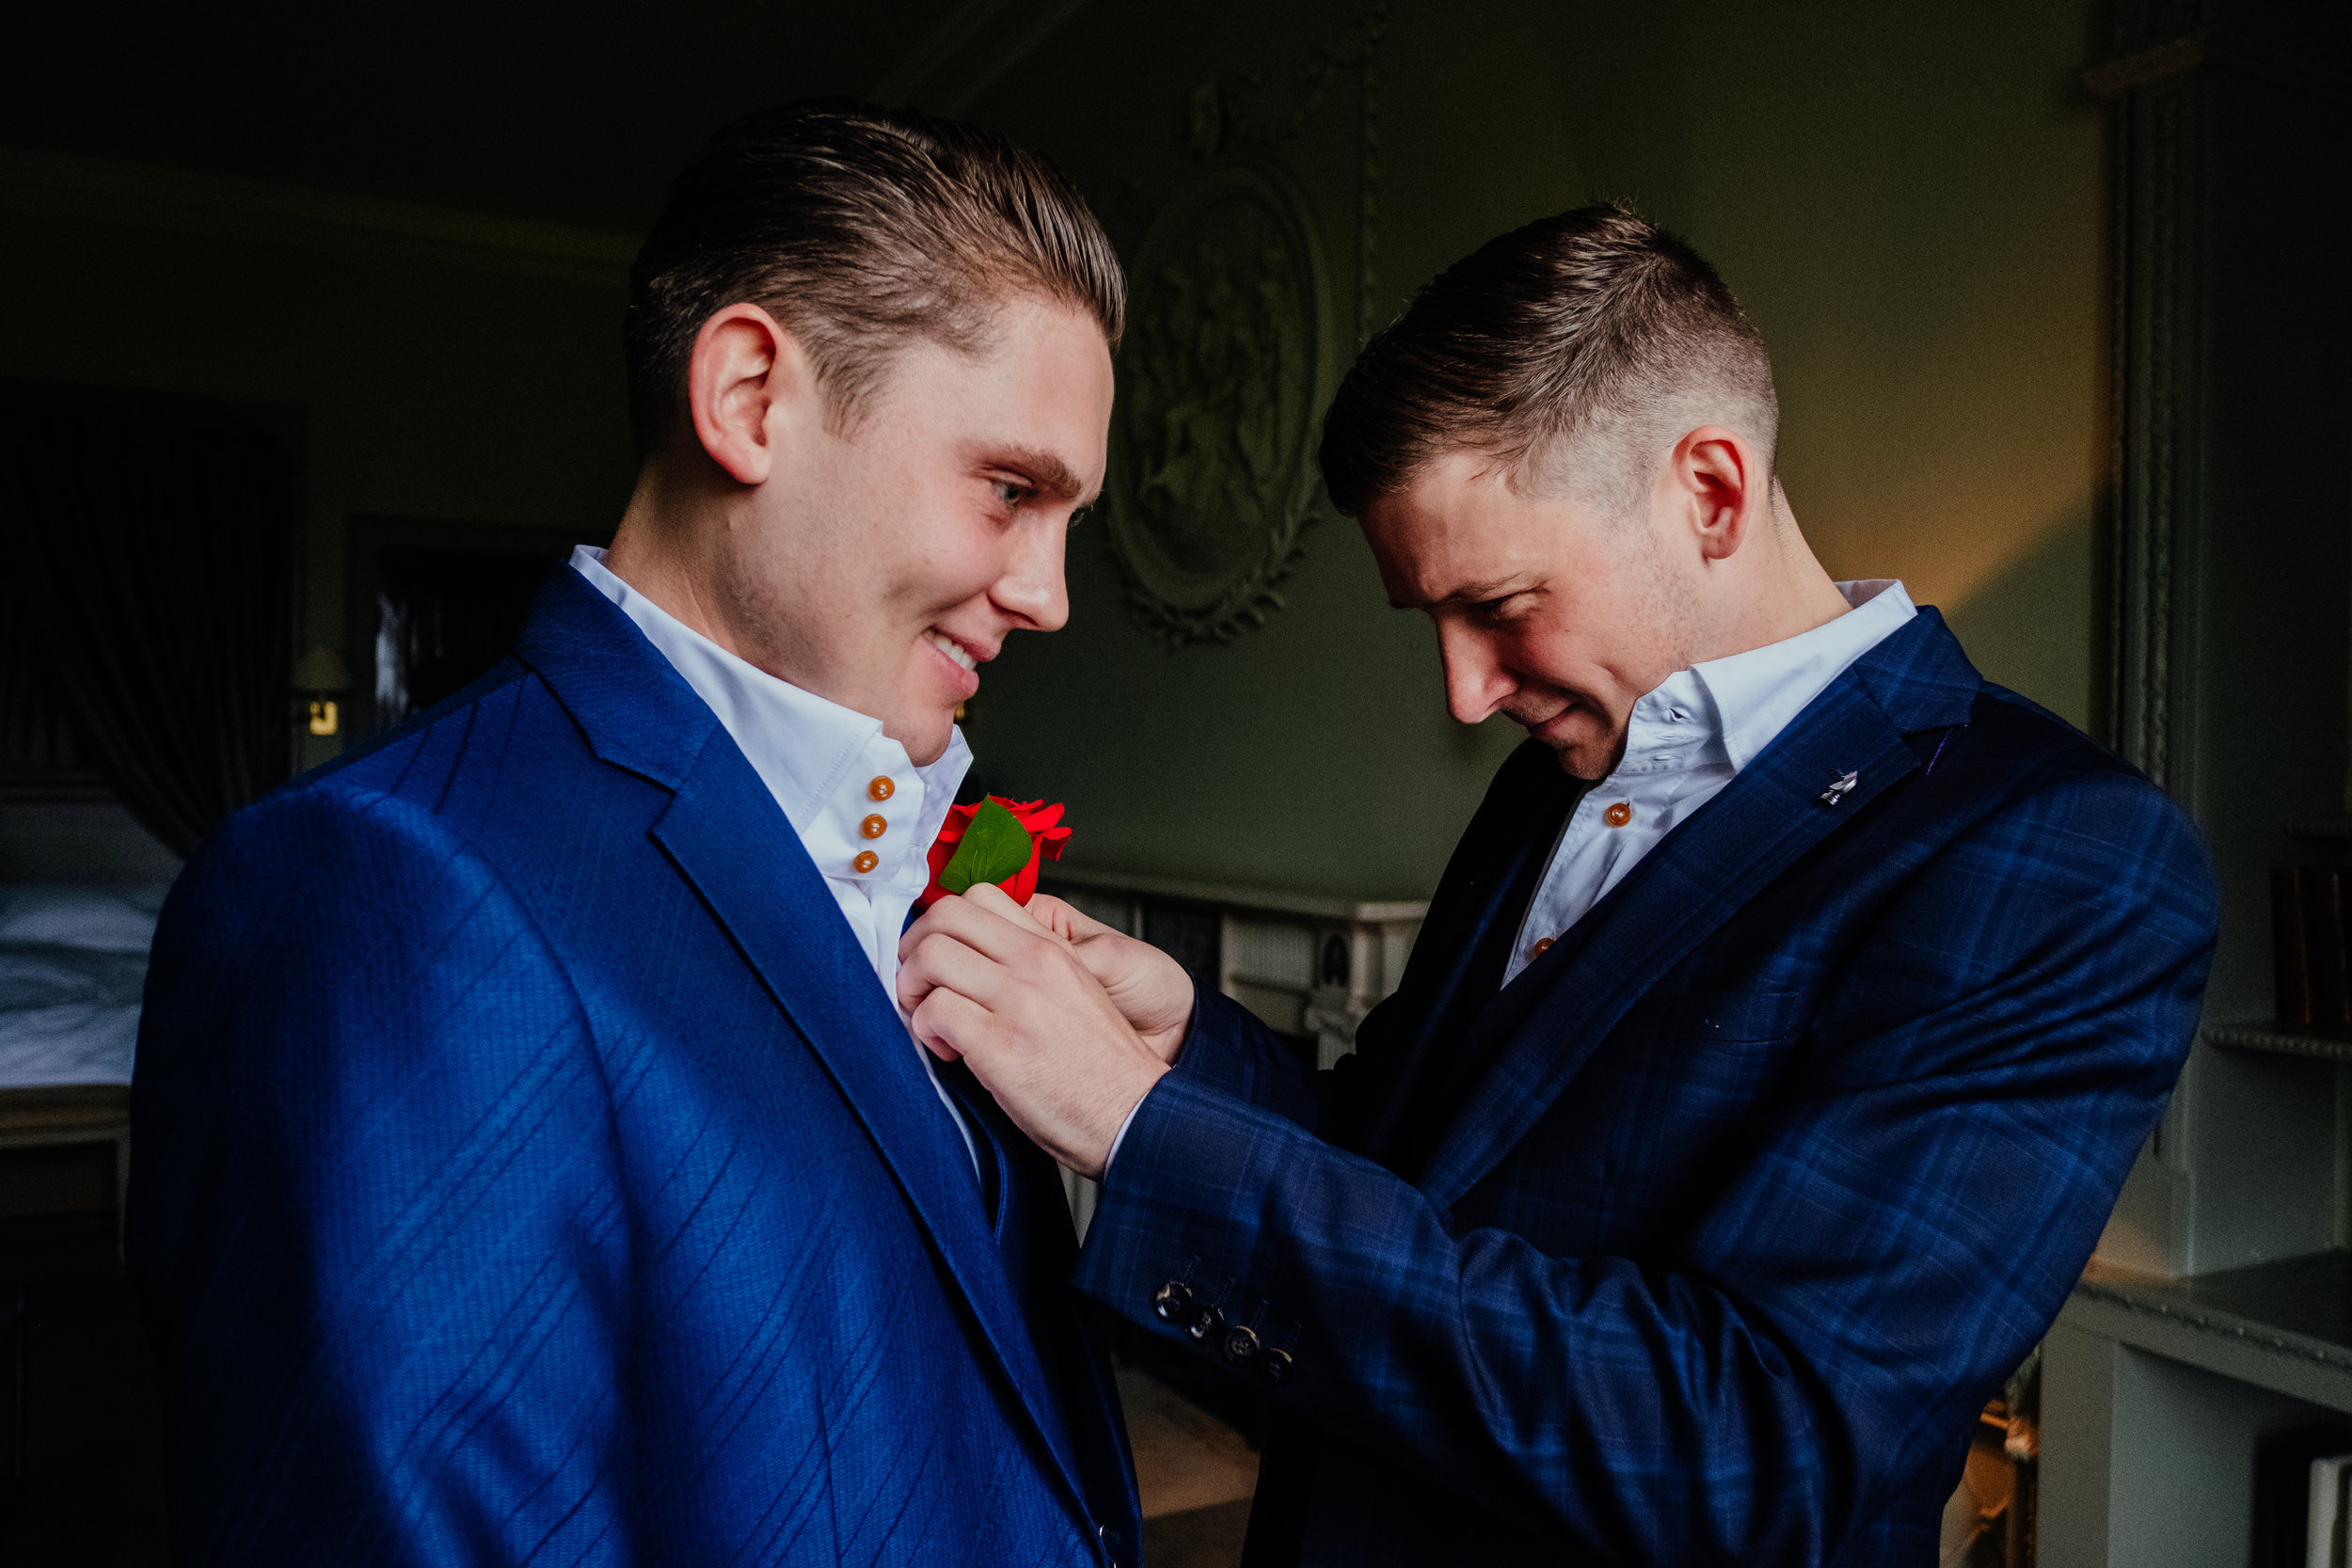 Buxted House Day of the Dead autumn wedding Groomsmen helps Groom put on rose buttonhole